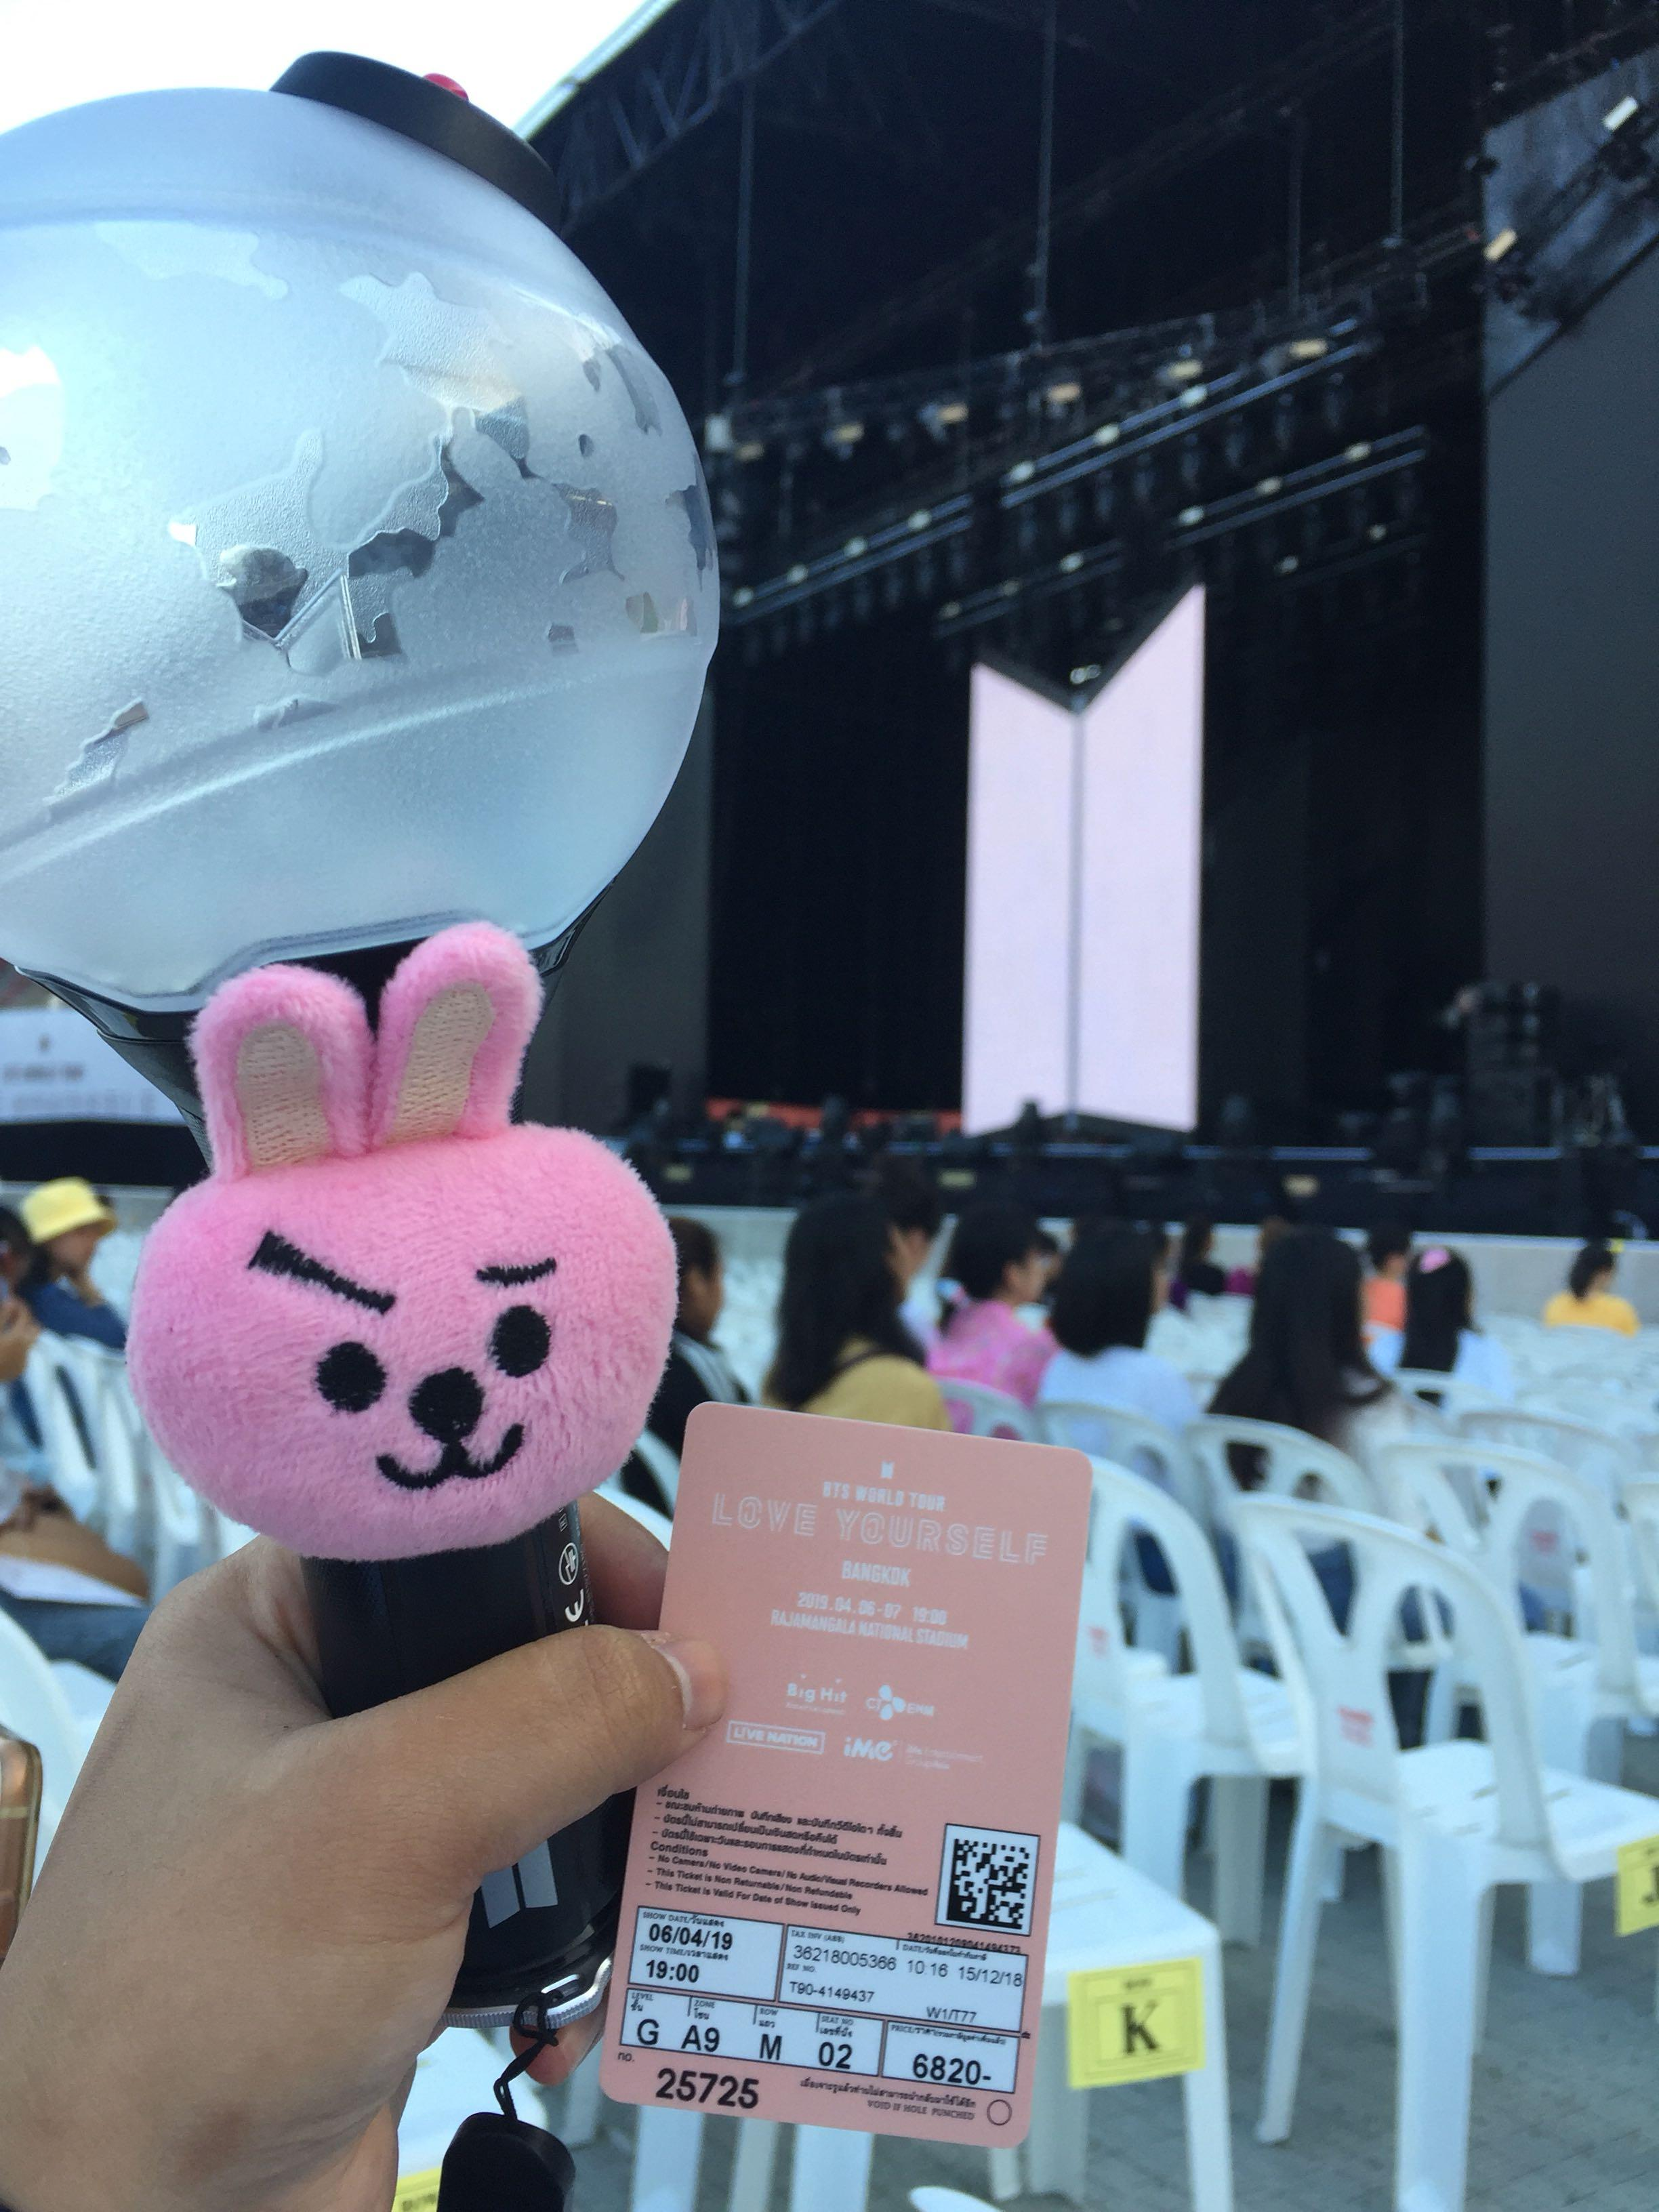 (UPDATE, SAFELY ARRIVE TO OWNER!) Bts ly bkk merch